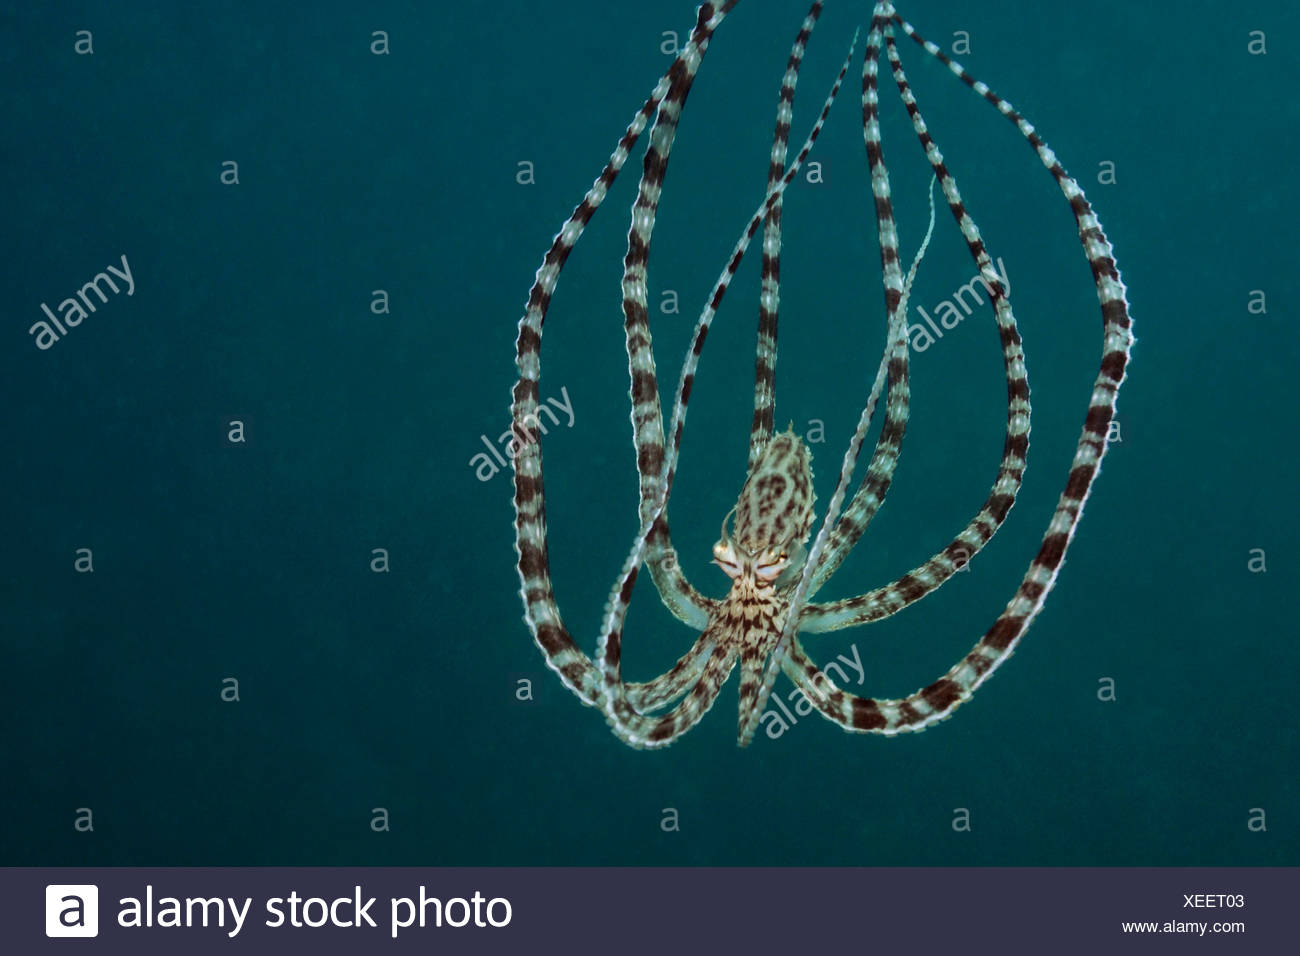 Mimic Octopus, Thaumoctopus mimicus, Lembeh Strait, Sulawesi, Indonesia Stock Photo